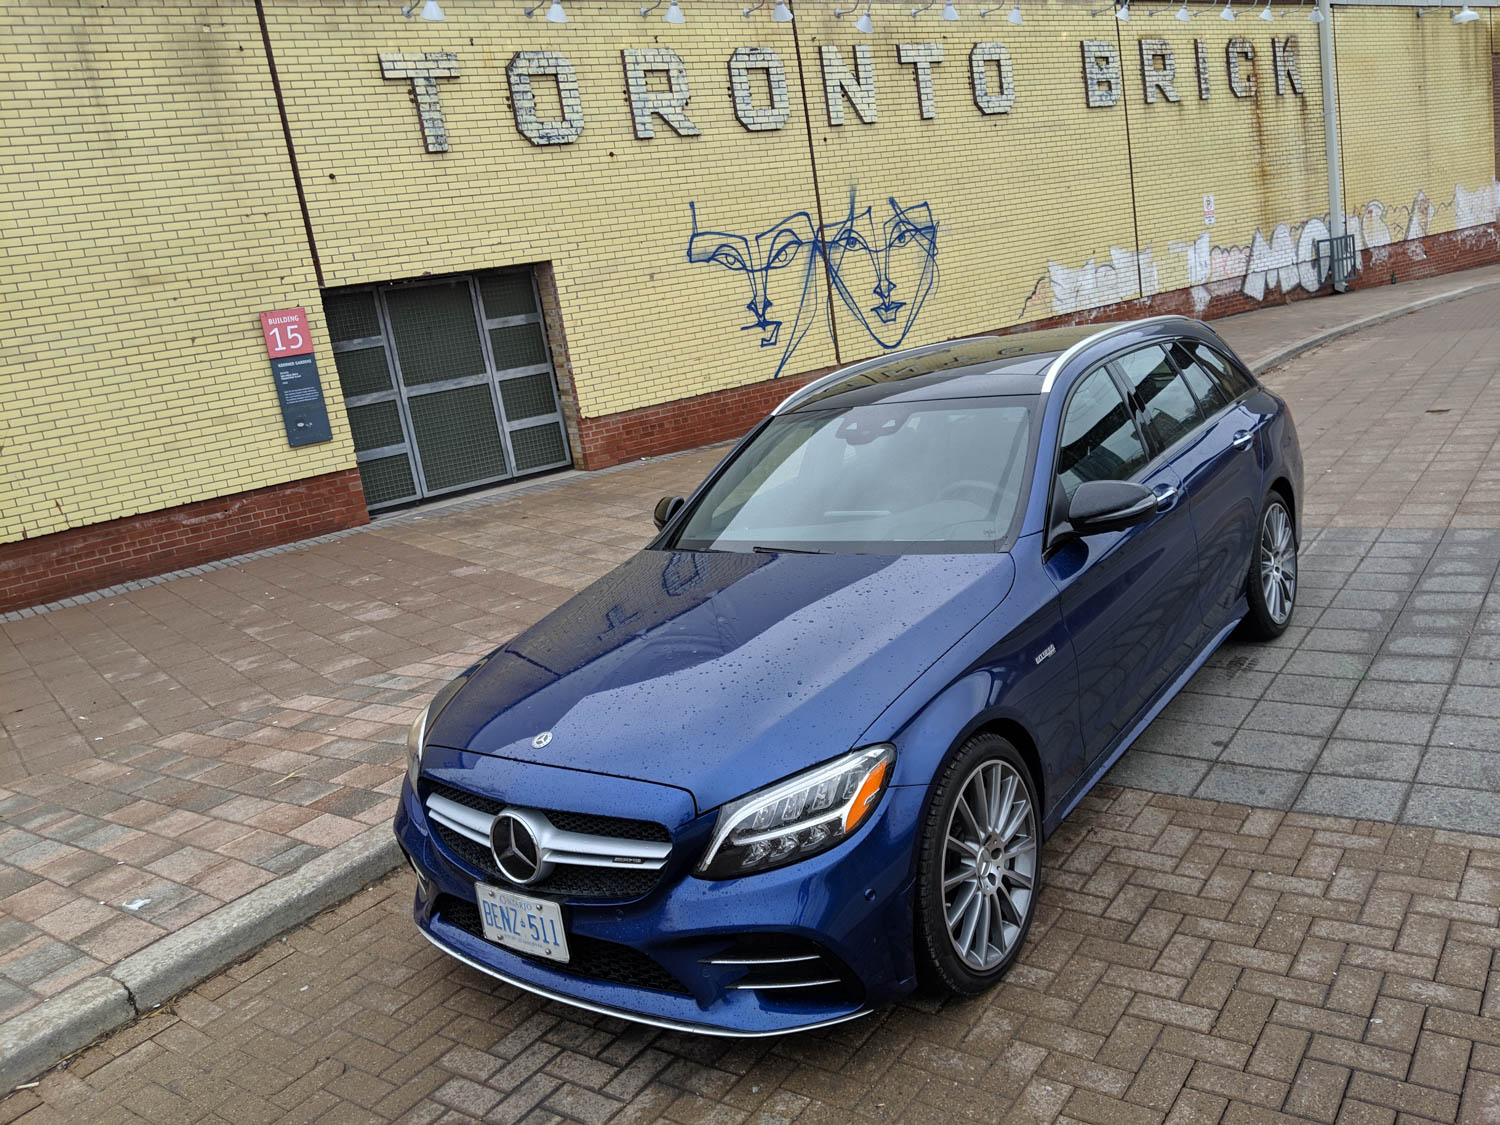 Mercedes-AMG C 43 4Matic Wagon front 3/4